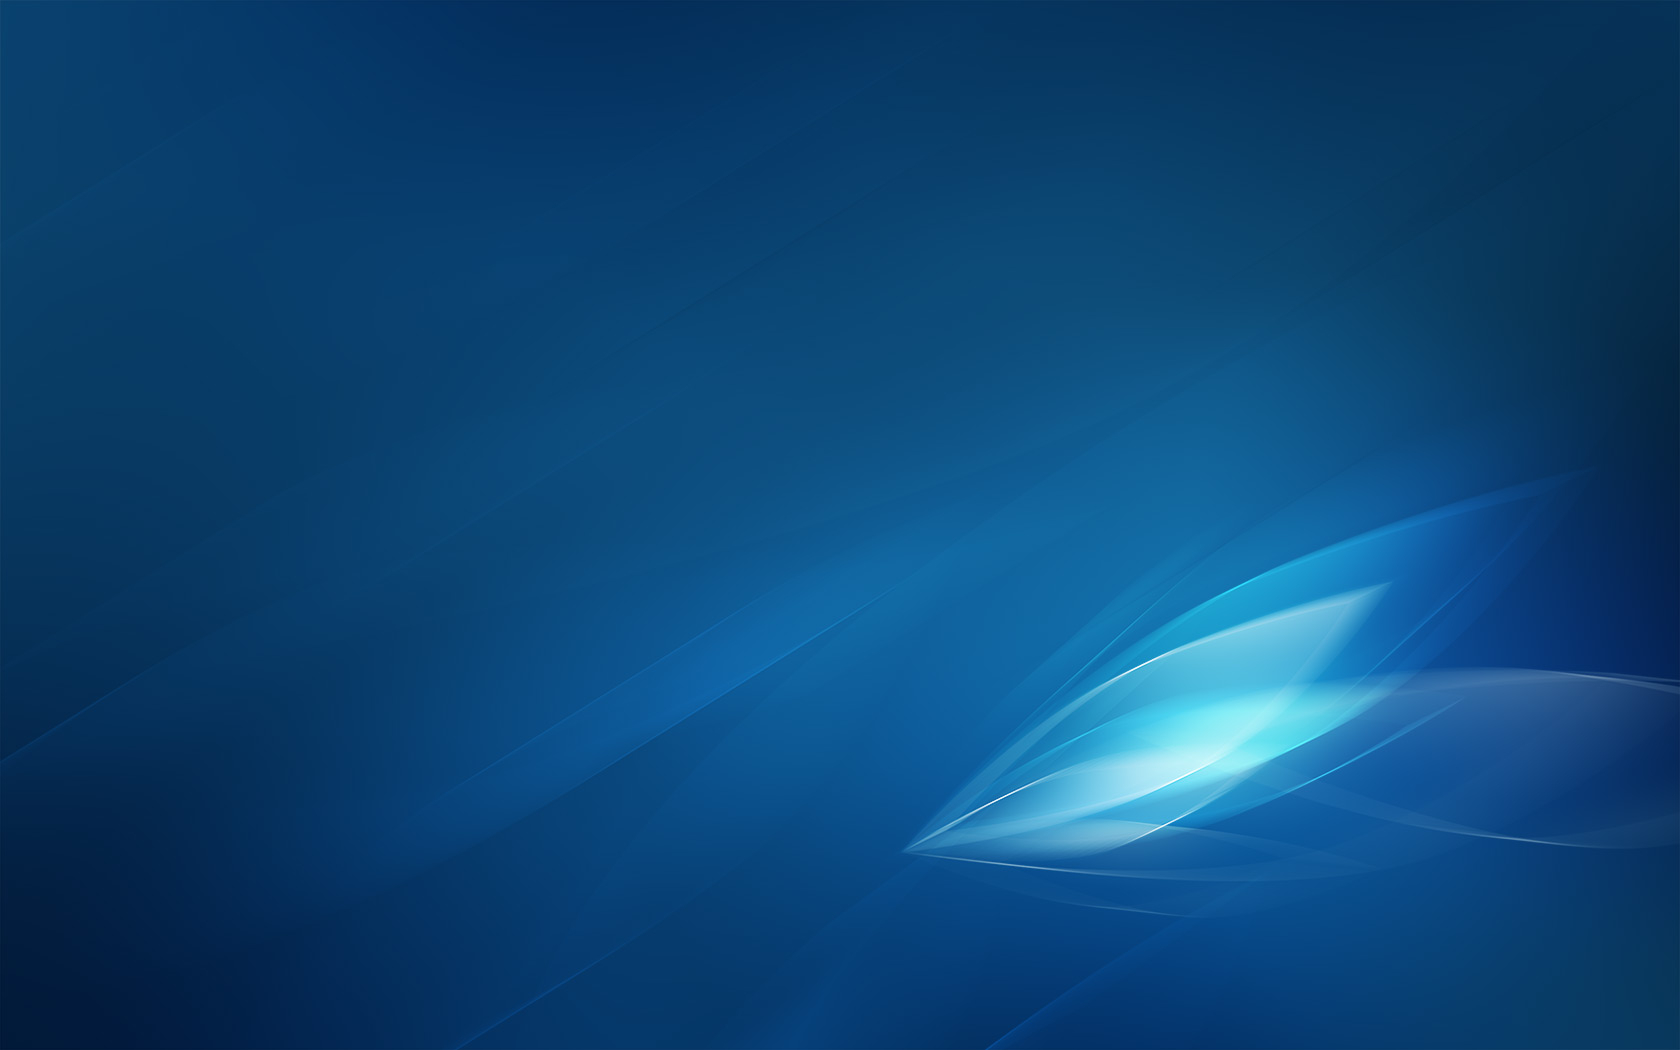 Aero Blue Abstract - 1680x1050